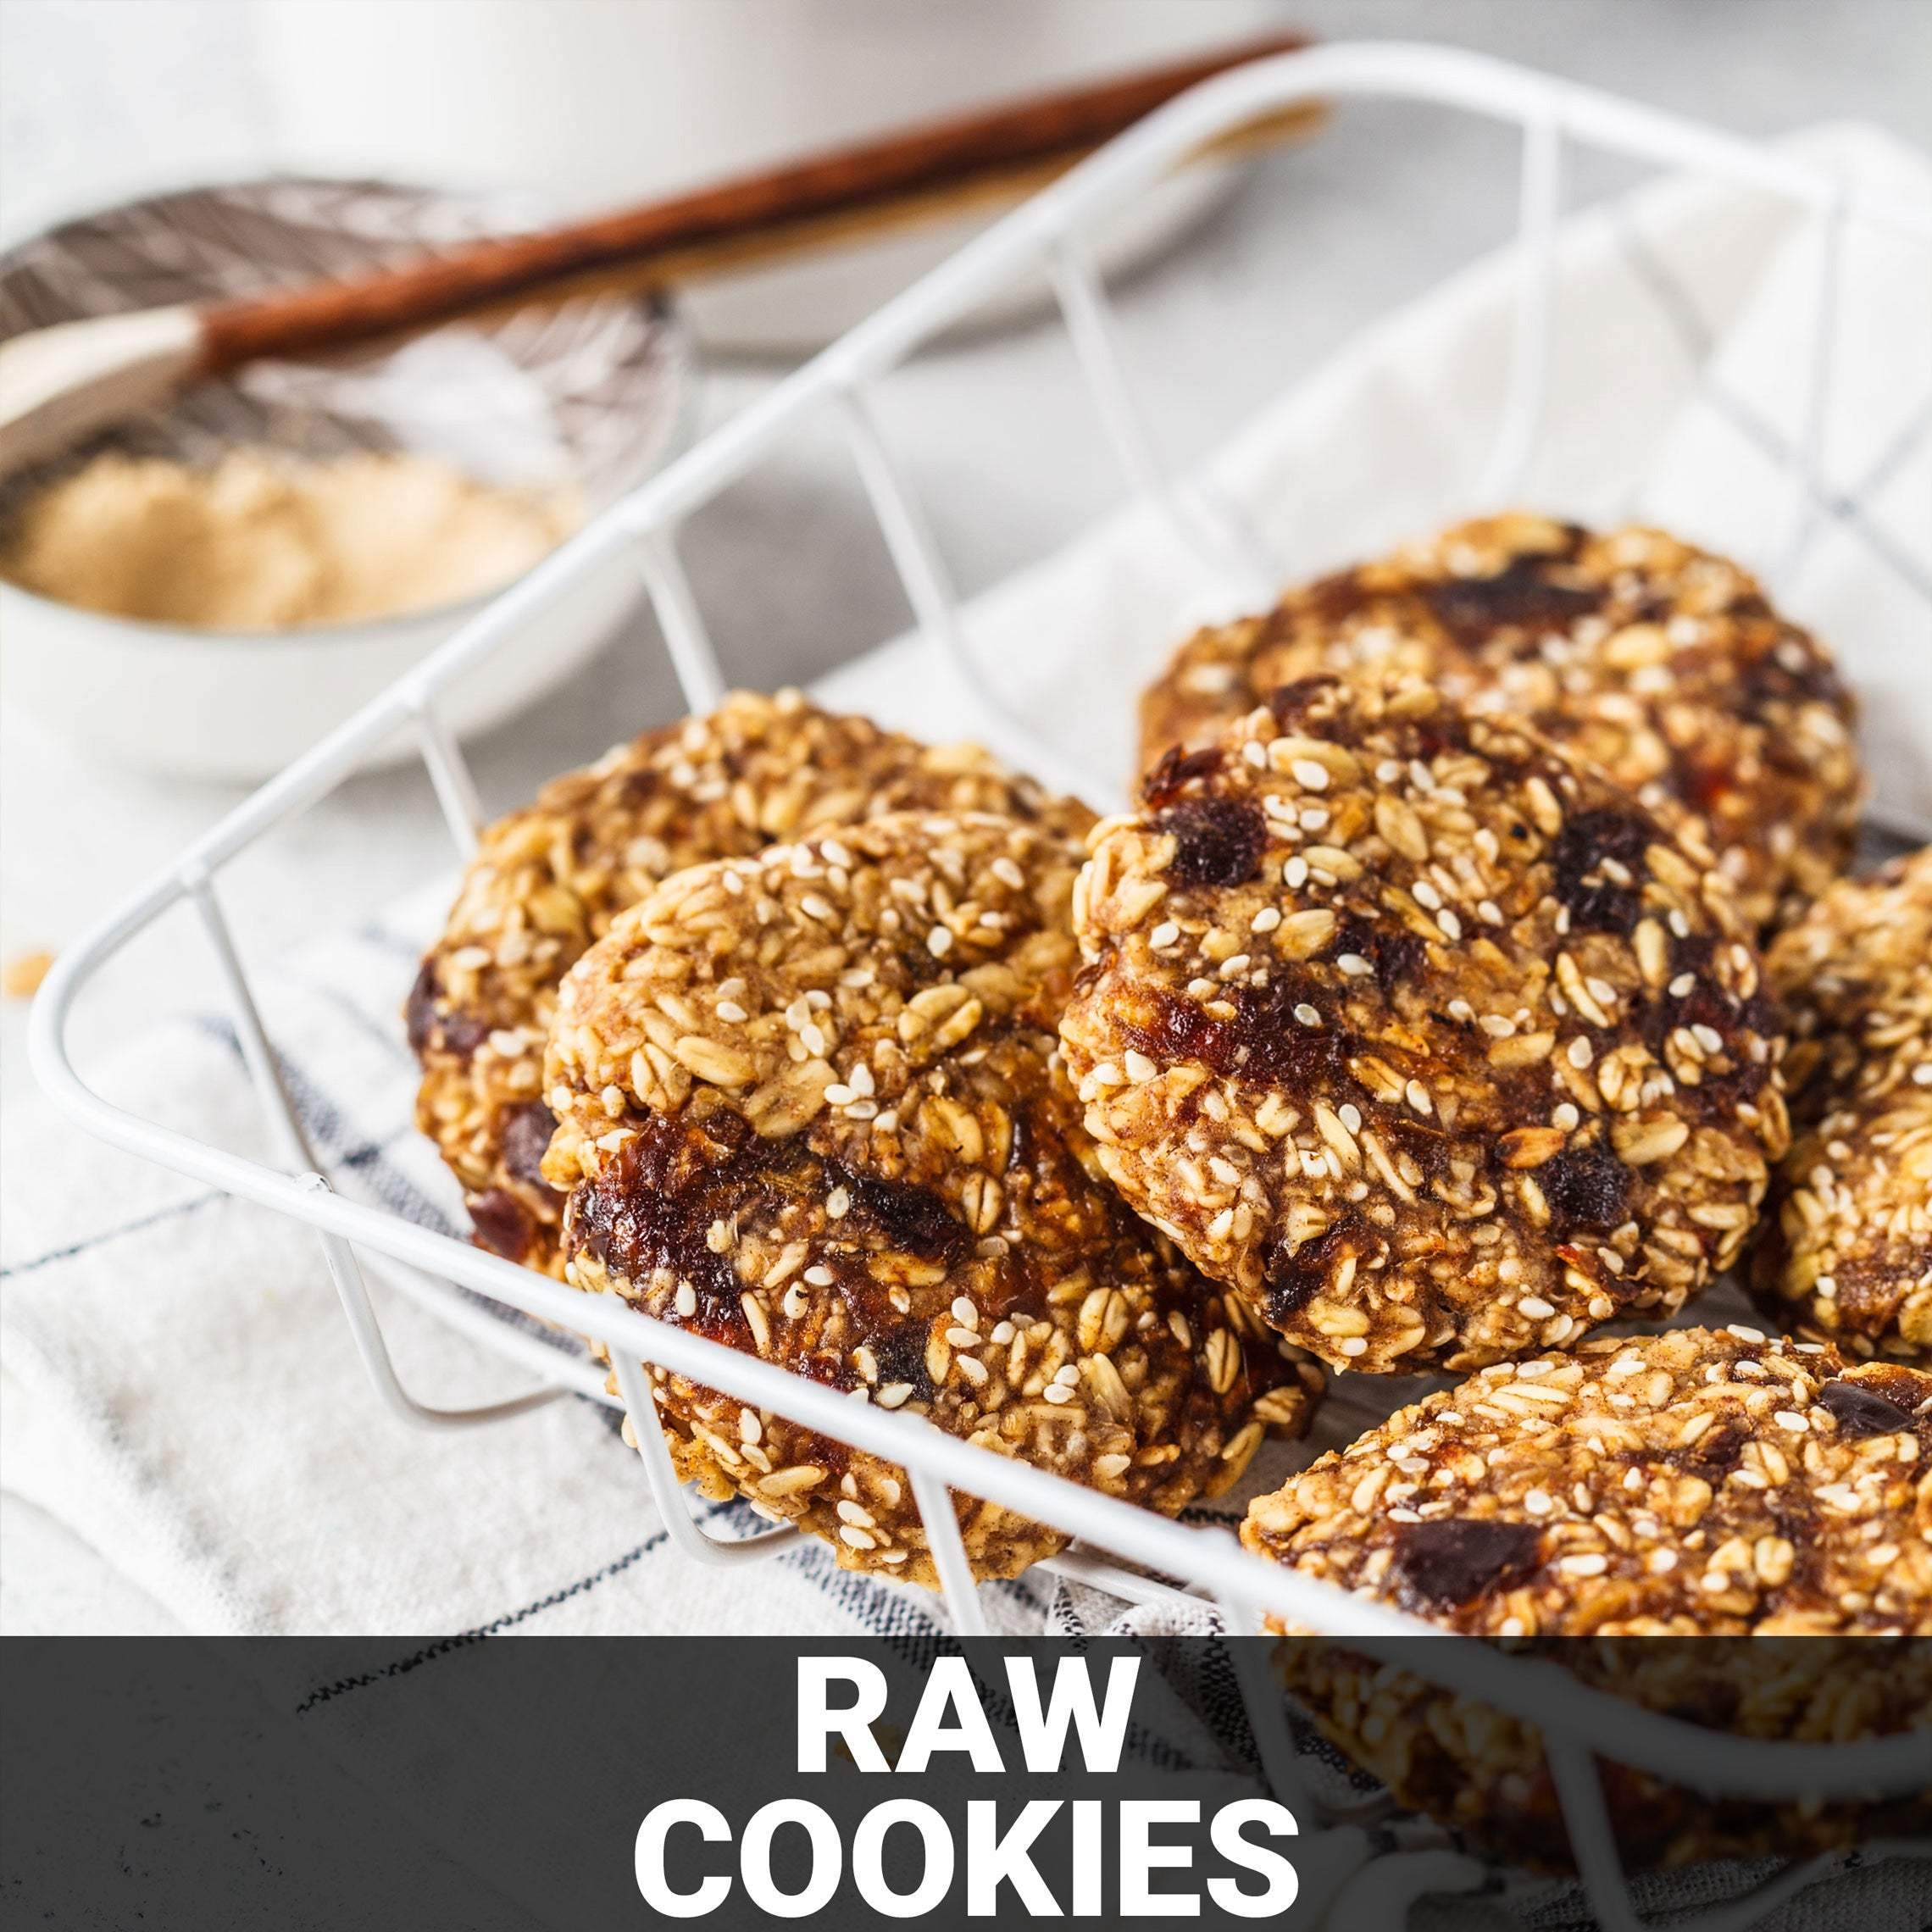 Raw Cookies Recipe - Foods Alive